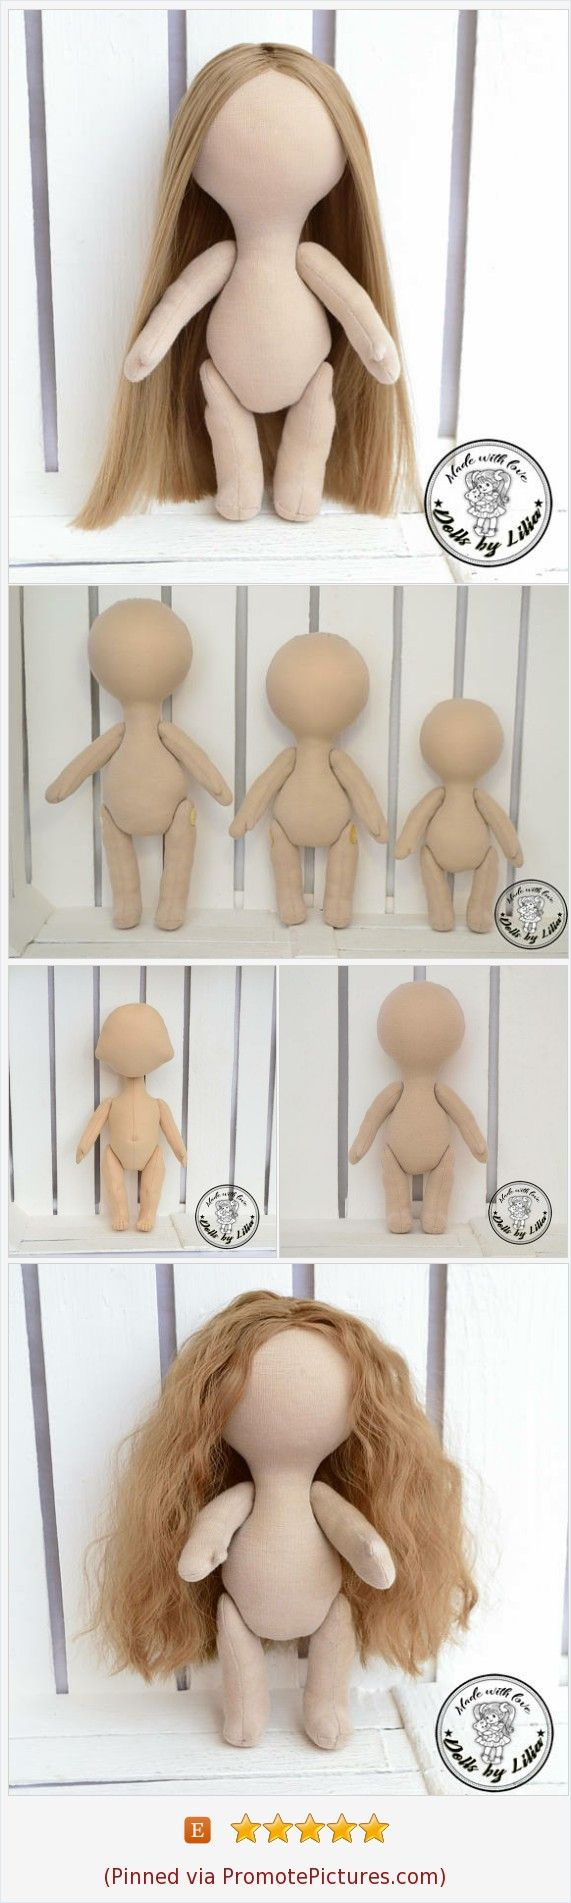 Blank doll body are ready for your interesting ideas. You can finish this doll to your taste, make a haircut, draw a face and sew clothes. https://www.etsy.com/shop/DollsbyLilia?ref=seller-platform-mcnav  (Pinned using https://PromotePictures.com)